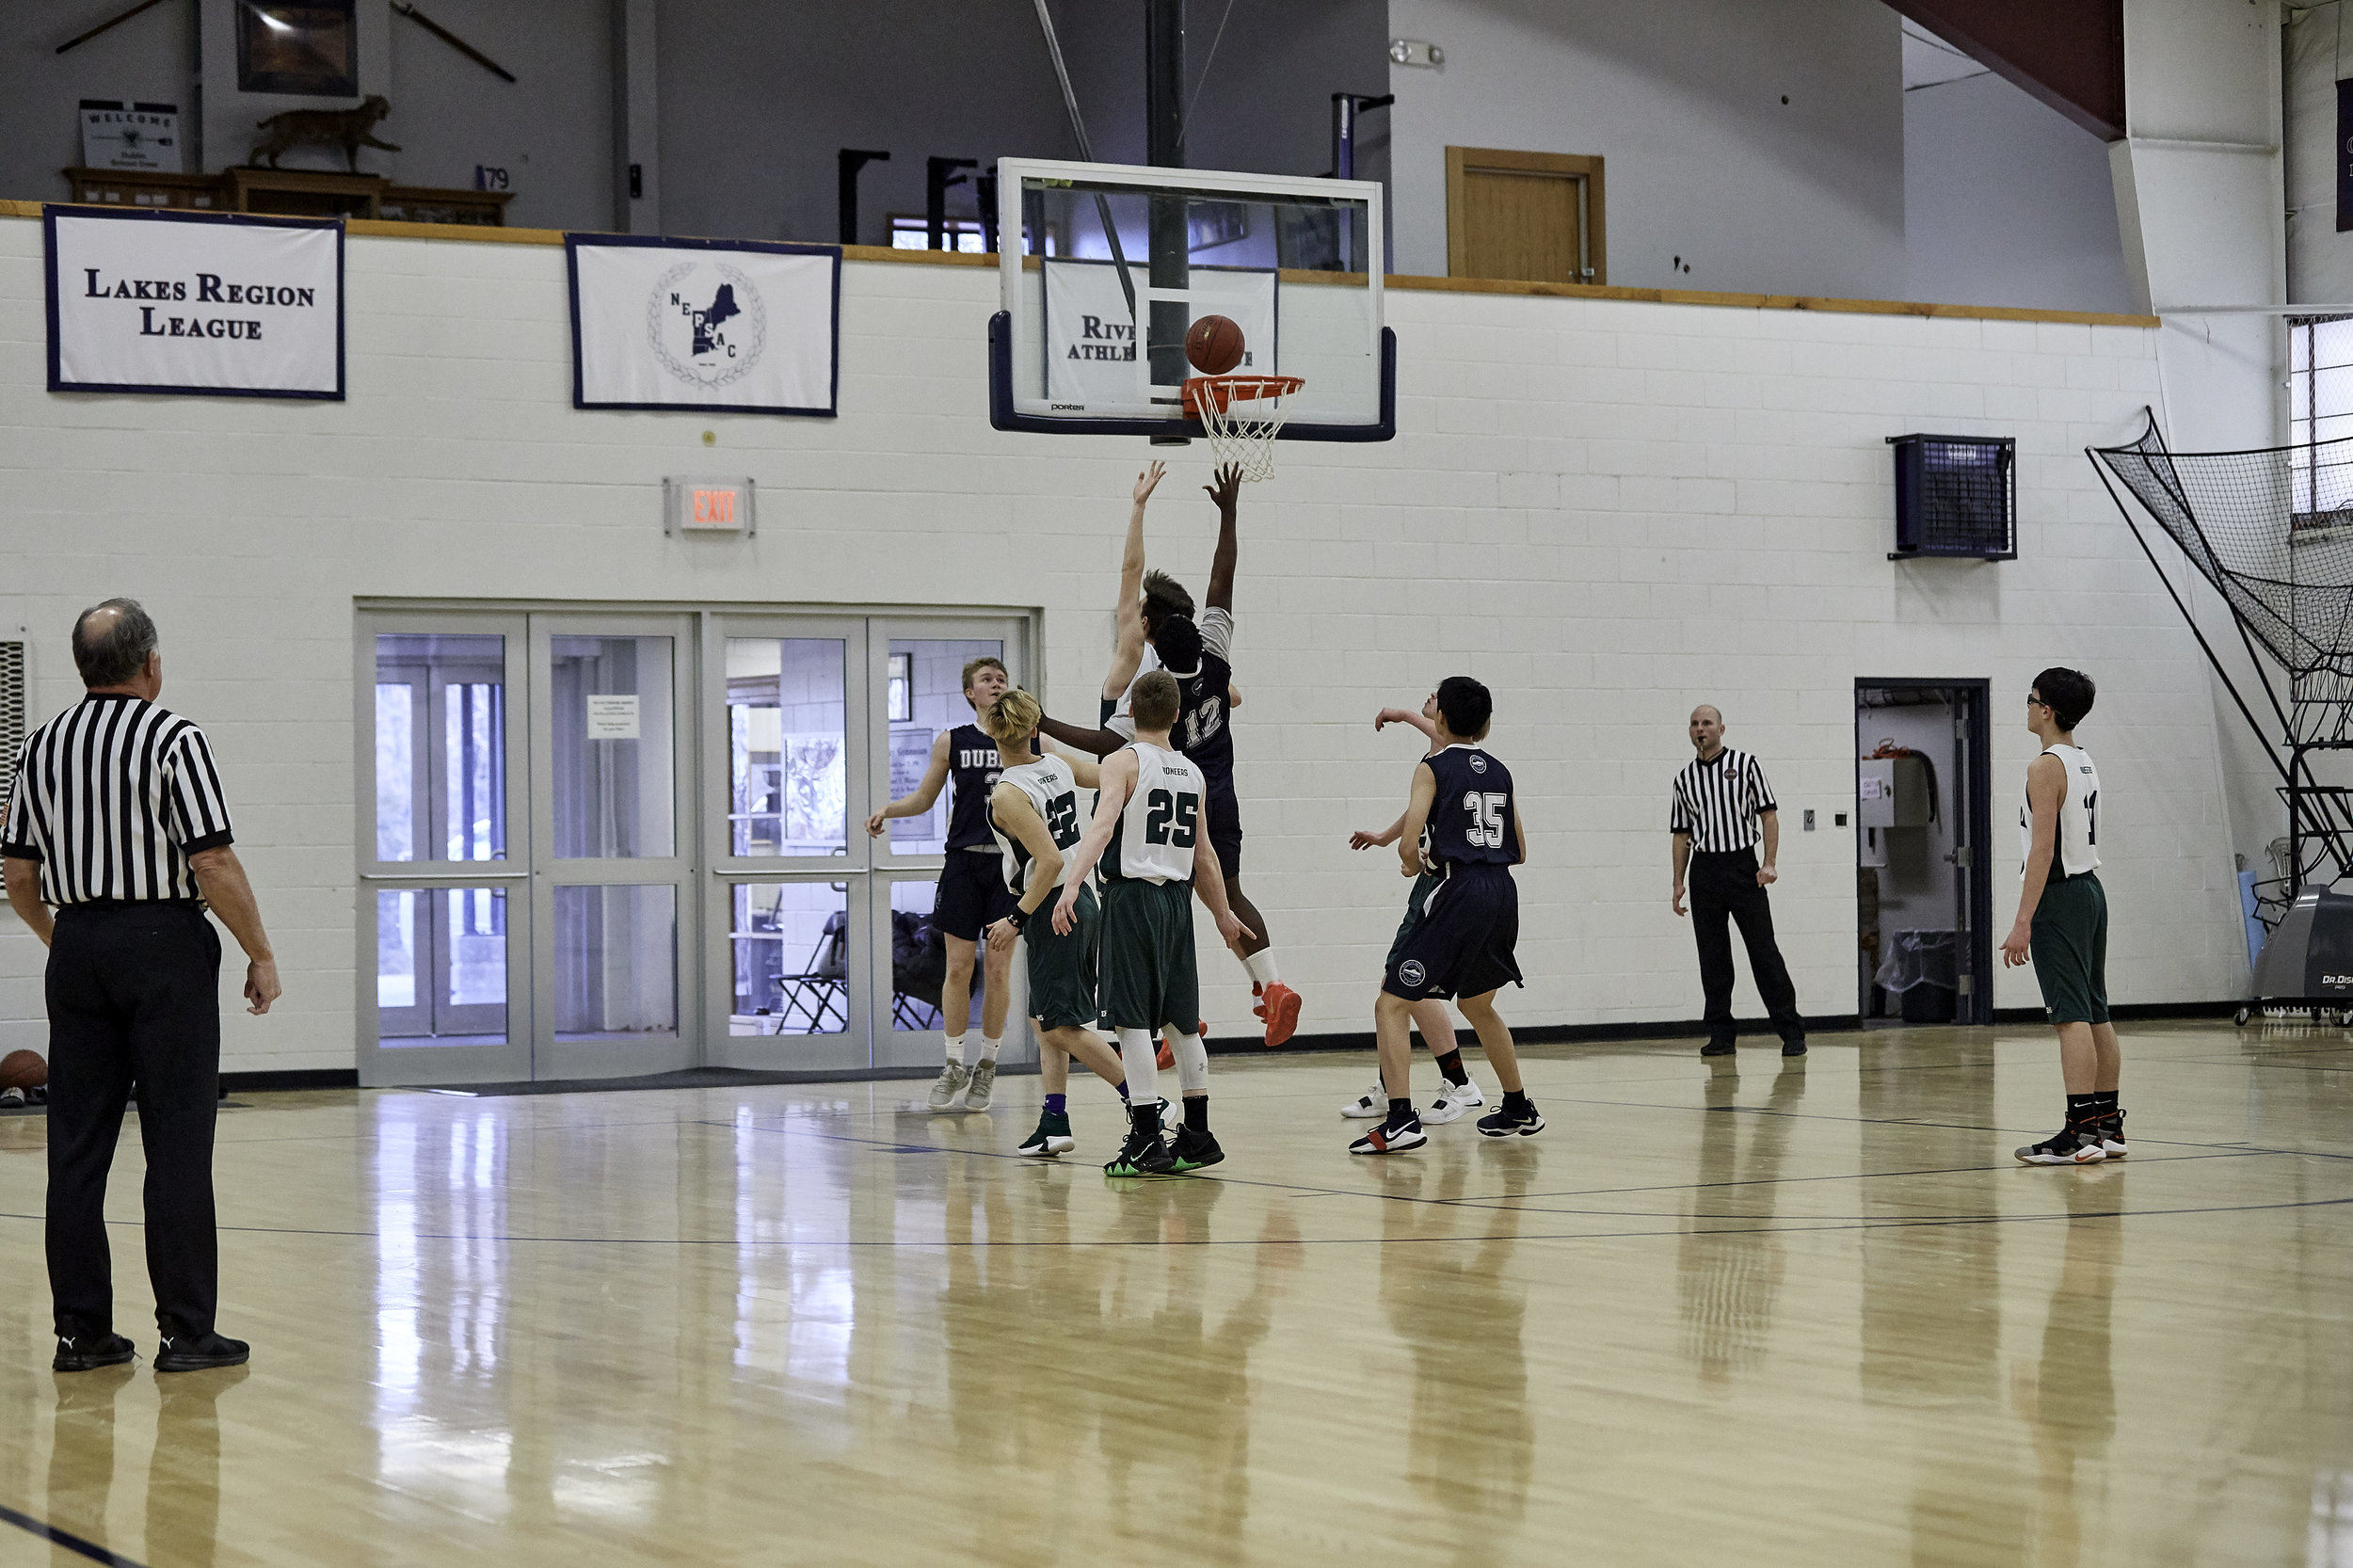 Boys Varsity Basketball vs. Eagle Hill School JV at RVAL Tournament - February 11, 2019 - 167935.jpg